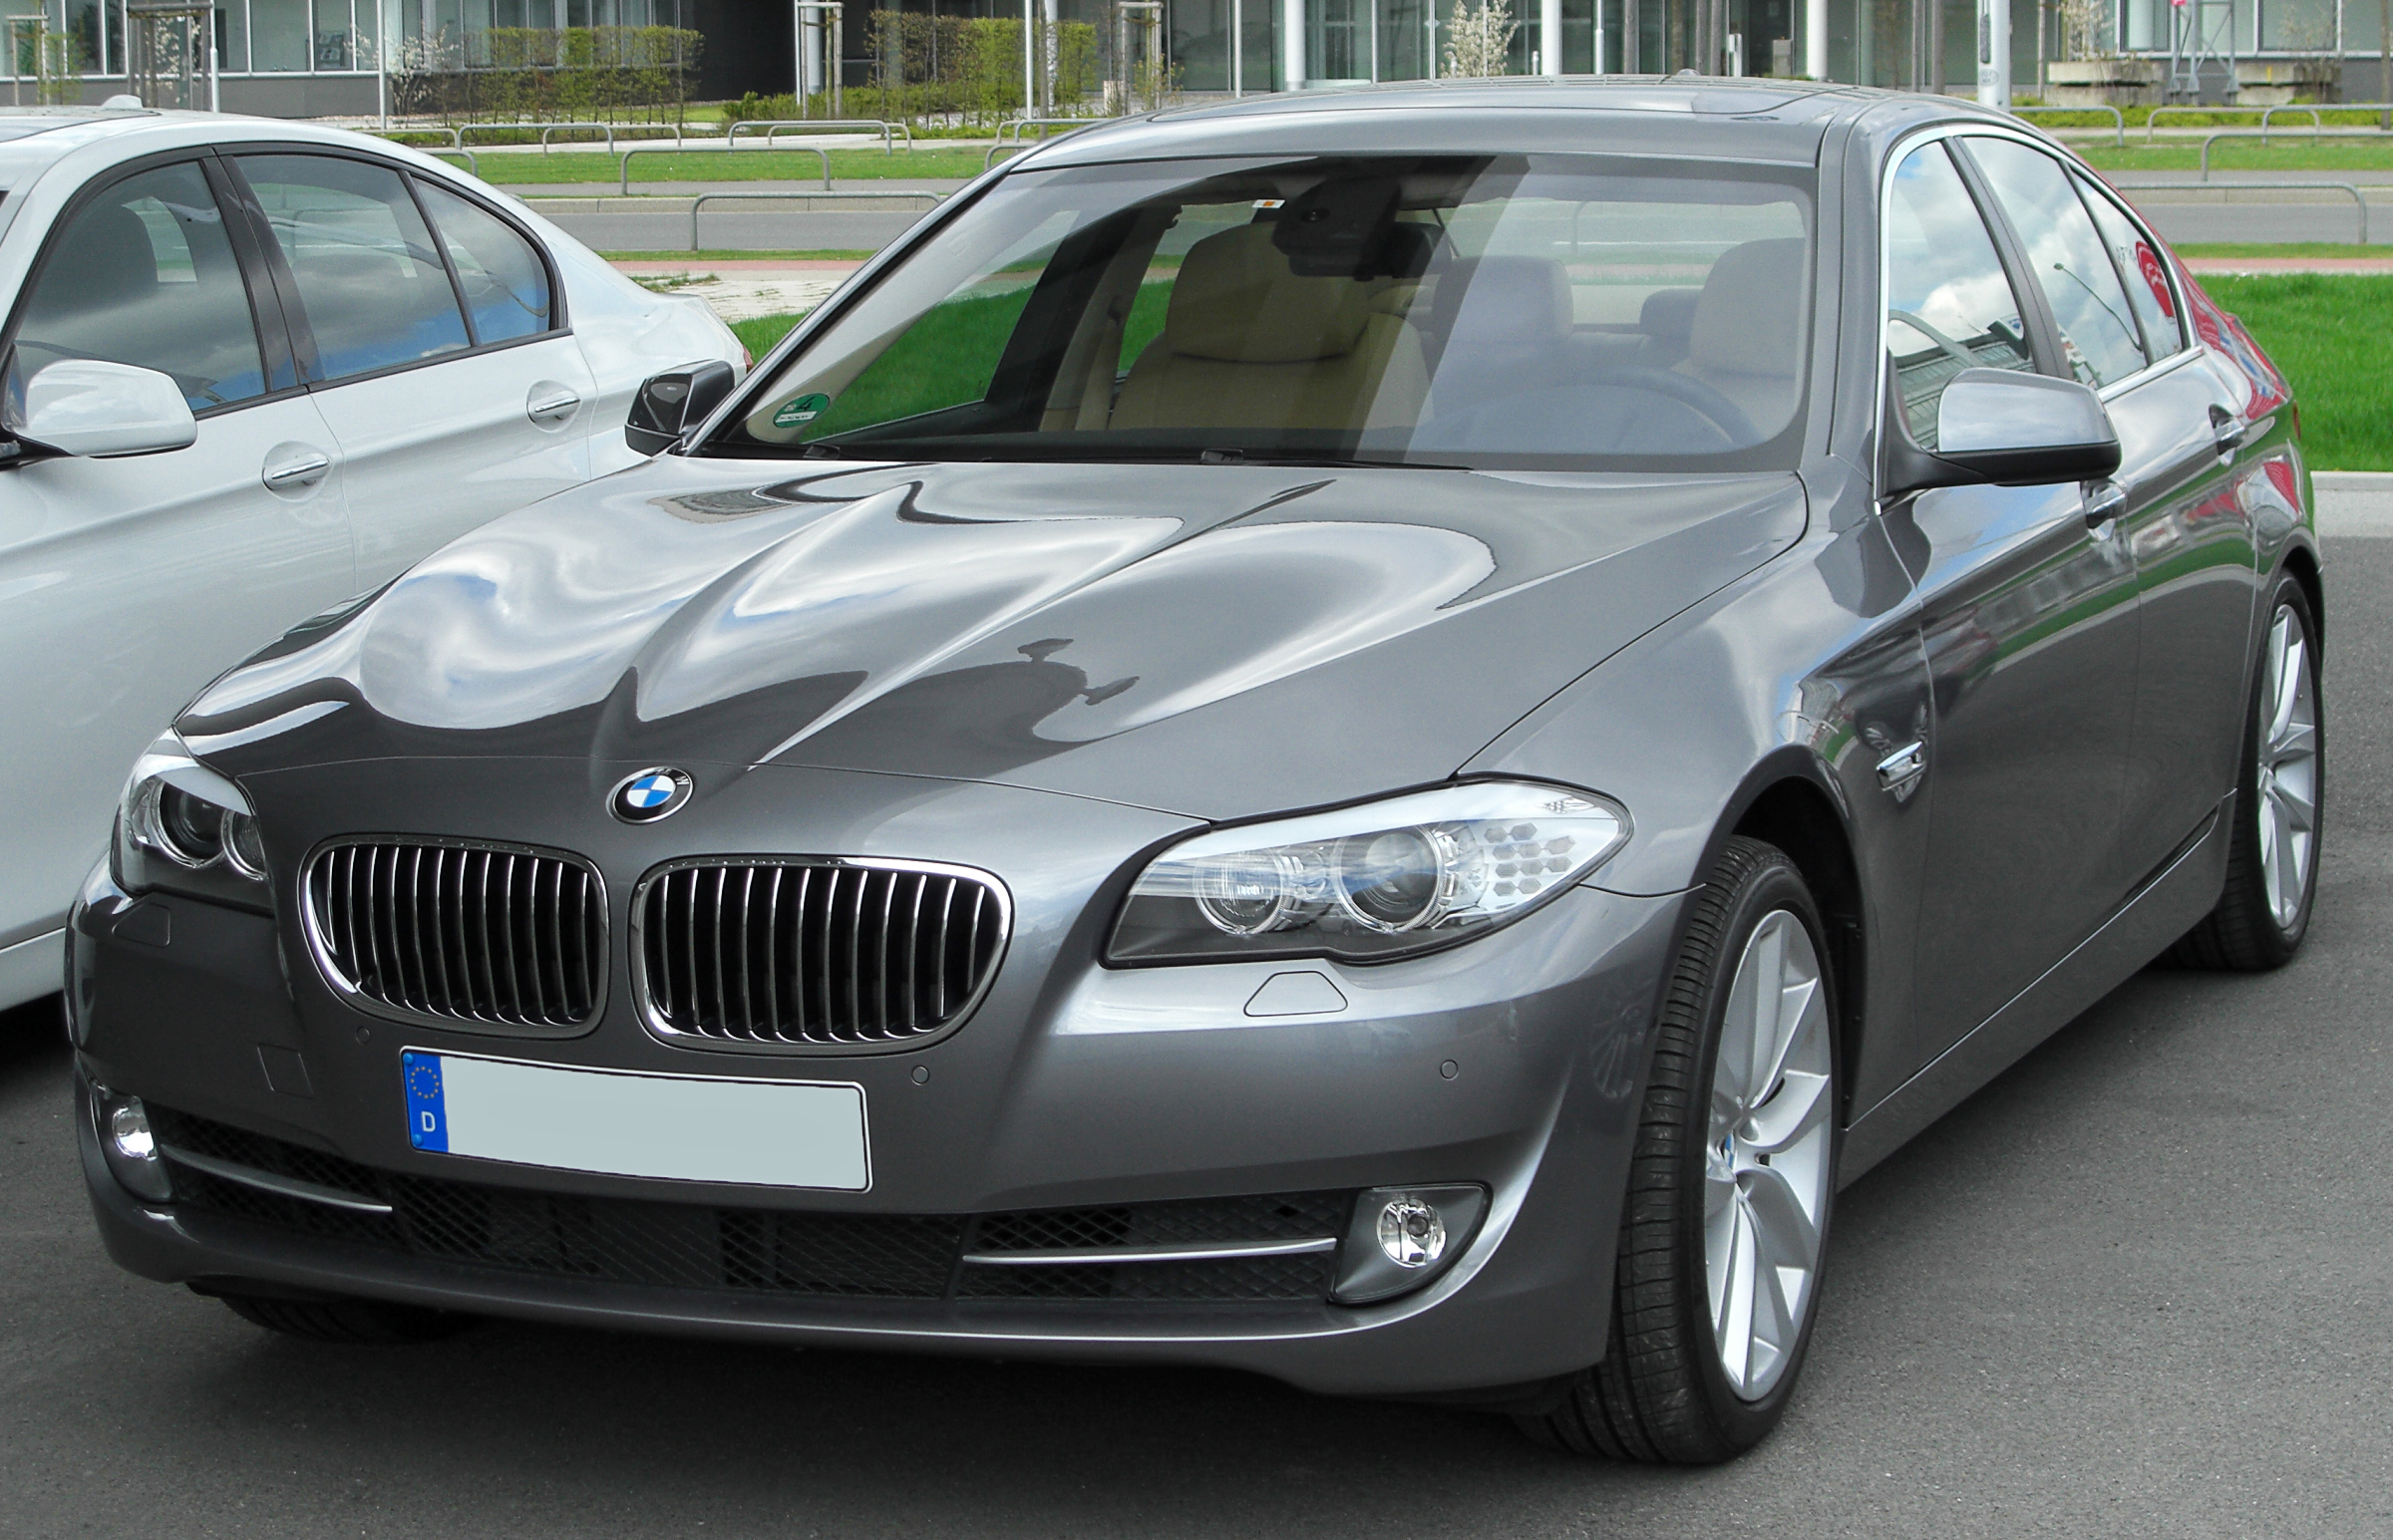 FileBMW I F Front Jpg Wikimedia Commons - 2010 bmw 535i